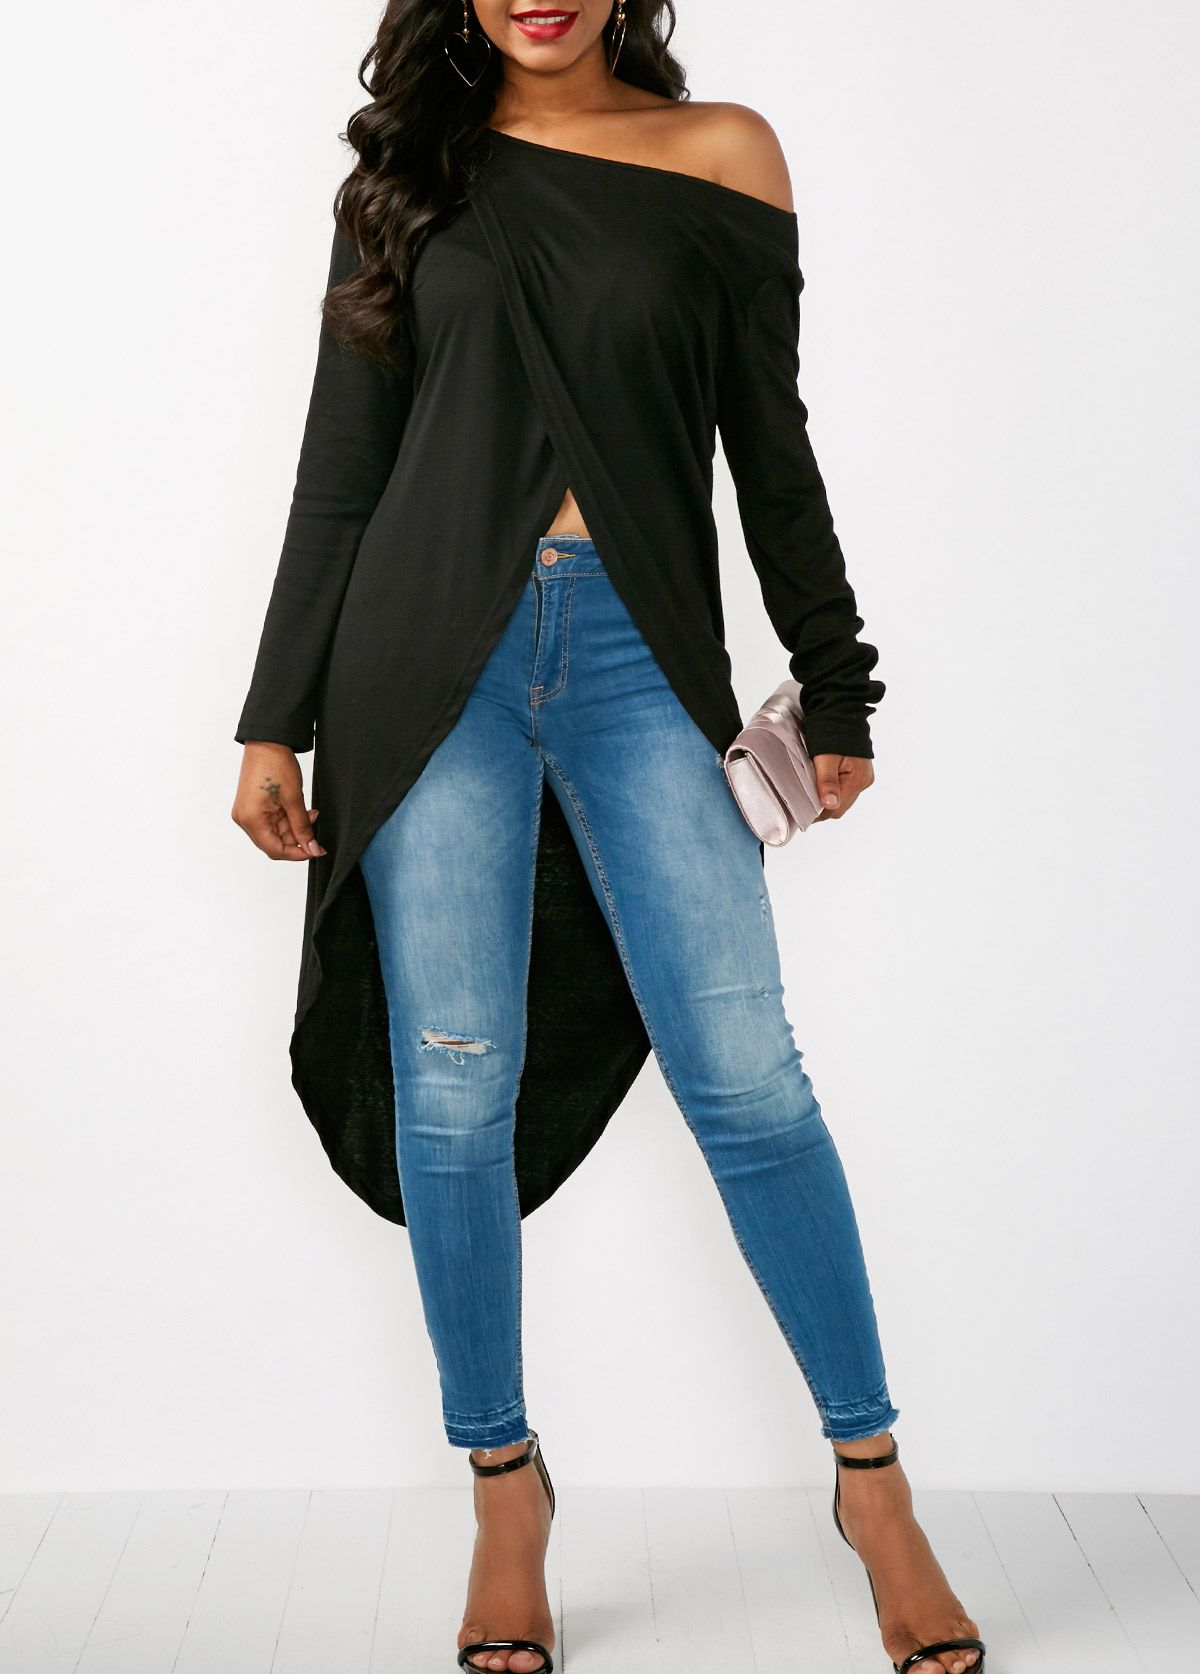 5c00c2c0243 Womens Fashion For Over 50. Classy and Sexy! Great look! Long Sleeve  Asymmetric Hem Skew Neck Blouse